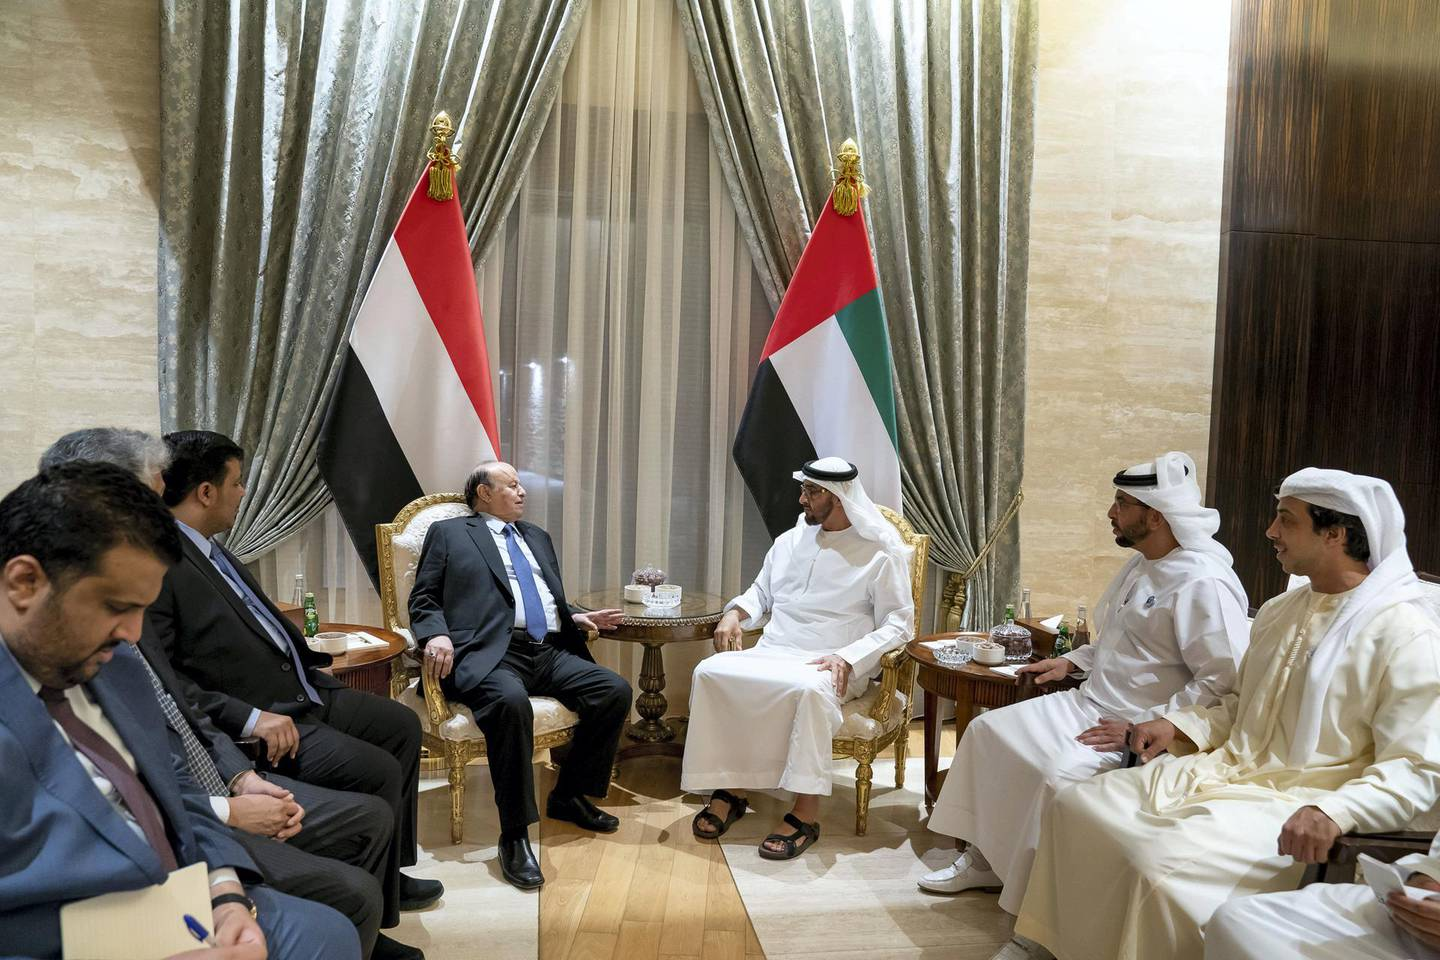 ABU DHABI, UNITED ARAB EMIRATES - June 12, 2018: HH Sheikh Mohamed bin Zayed Al Nahyan Crown Prince of Abu Dhabi Deputy Supreme Commander of the UAE Armed Forces (3rd R) meets with HE Abdrabbuh Mansour Hadi President of Yemen (4th R), at Al Shati Palace. Seen with HH Sheikh Mansour bin Zayed Al Nahyan, UAE Deputy Prime Minister and Minister of Presidential Affairs (R) and HH Sheikh Hamdan bin Zayed Al Nahyan, Ruler's Representative in Al Dhafra Region (2nd R).  ( Mohamed Al Hammadi / Crown Prince Court - Abu Dhabi ) ---